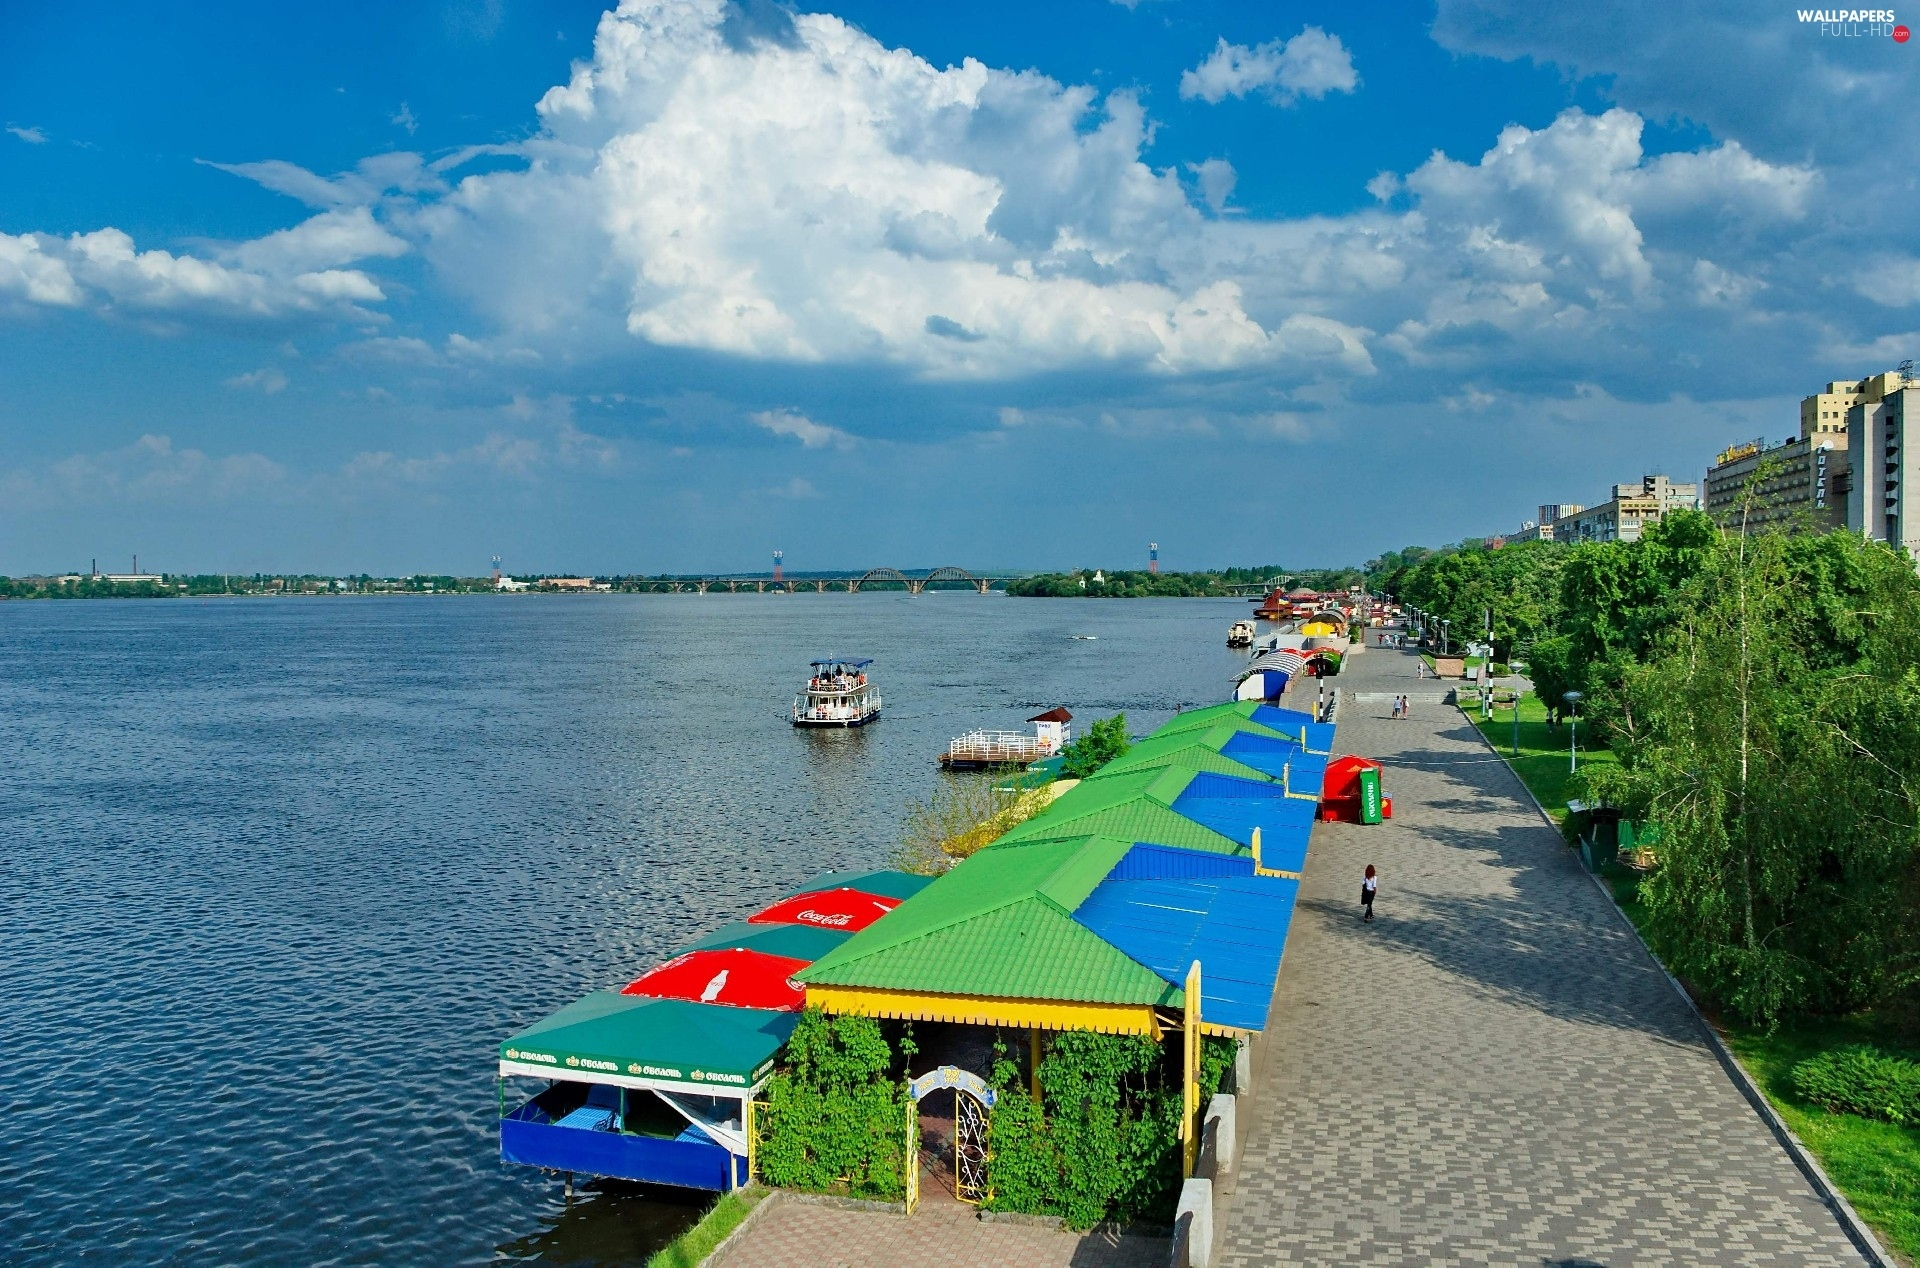 Sky, alley, vessels, River, Donetsk, Tents